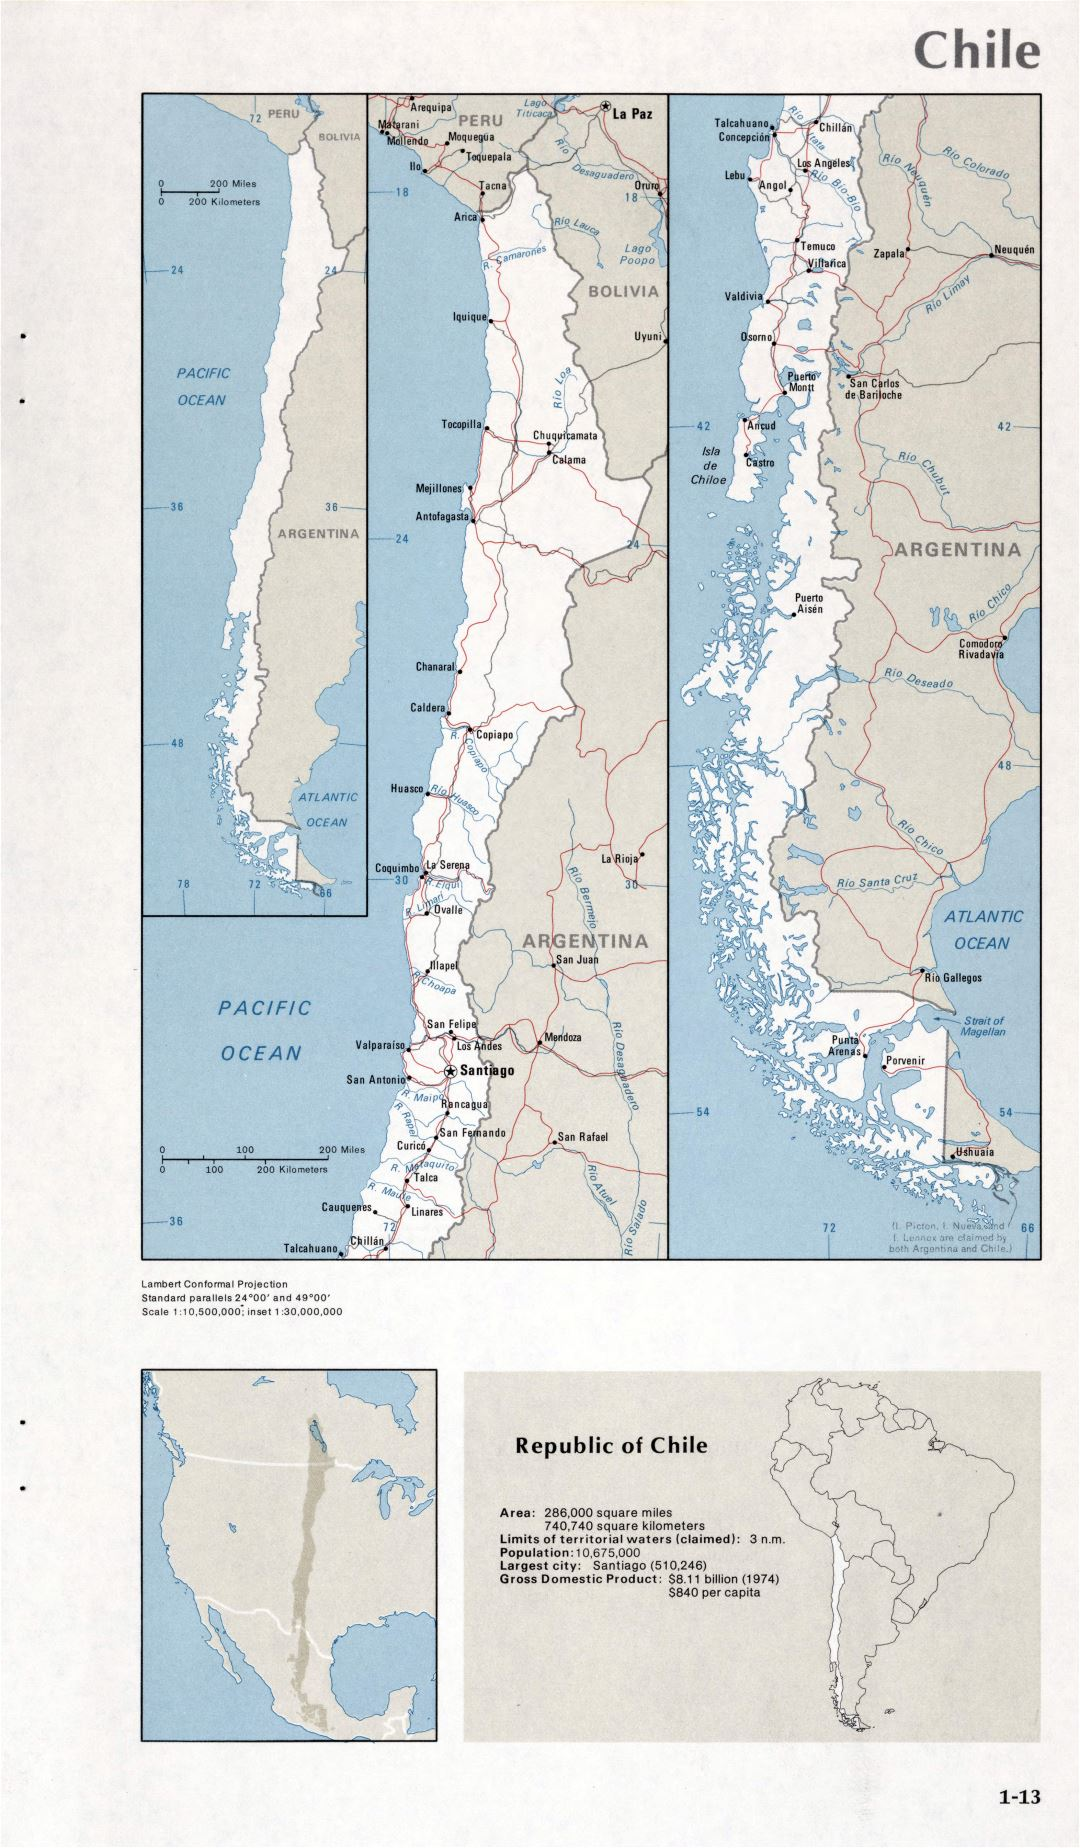 Map of Chile (1-13)